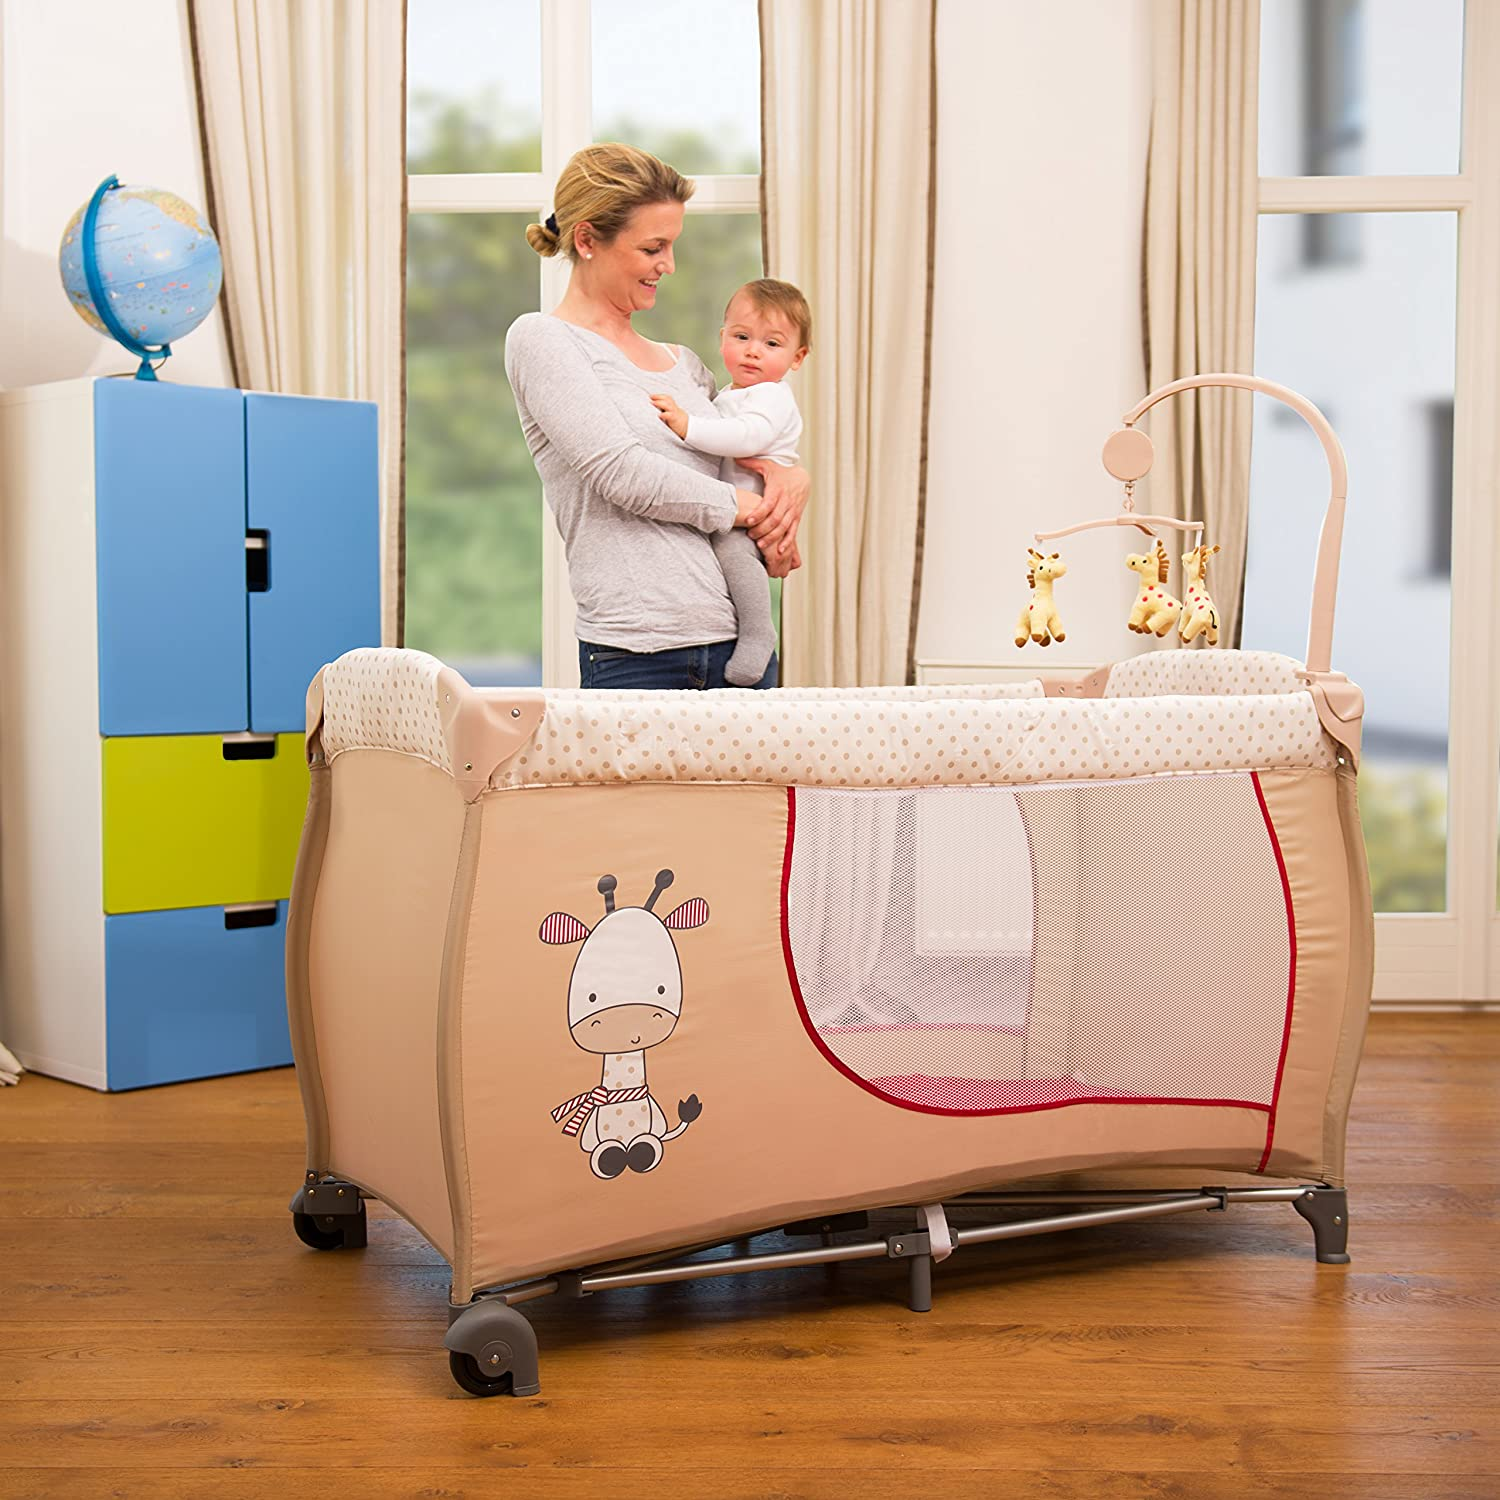 Hauck Baby Center Travel Cot Plus Bed Me Travel Cot Sheet Giraffe